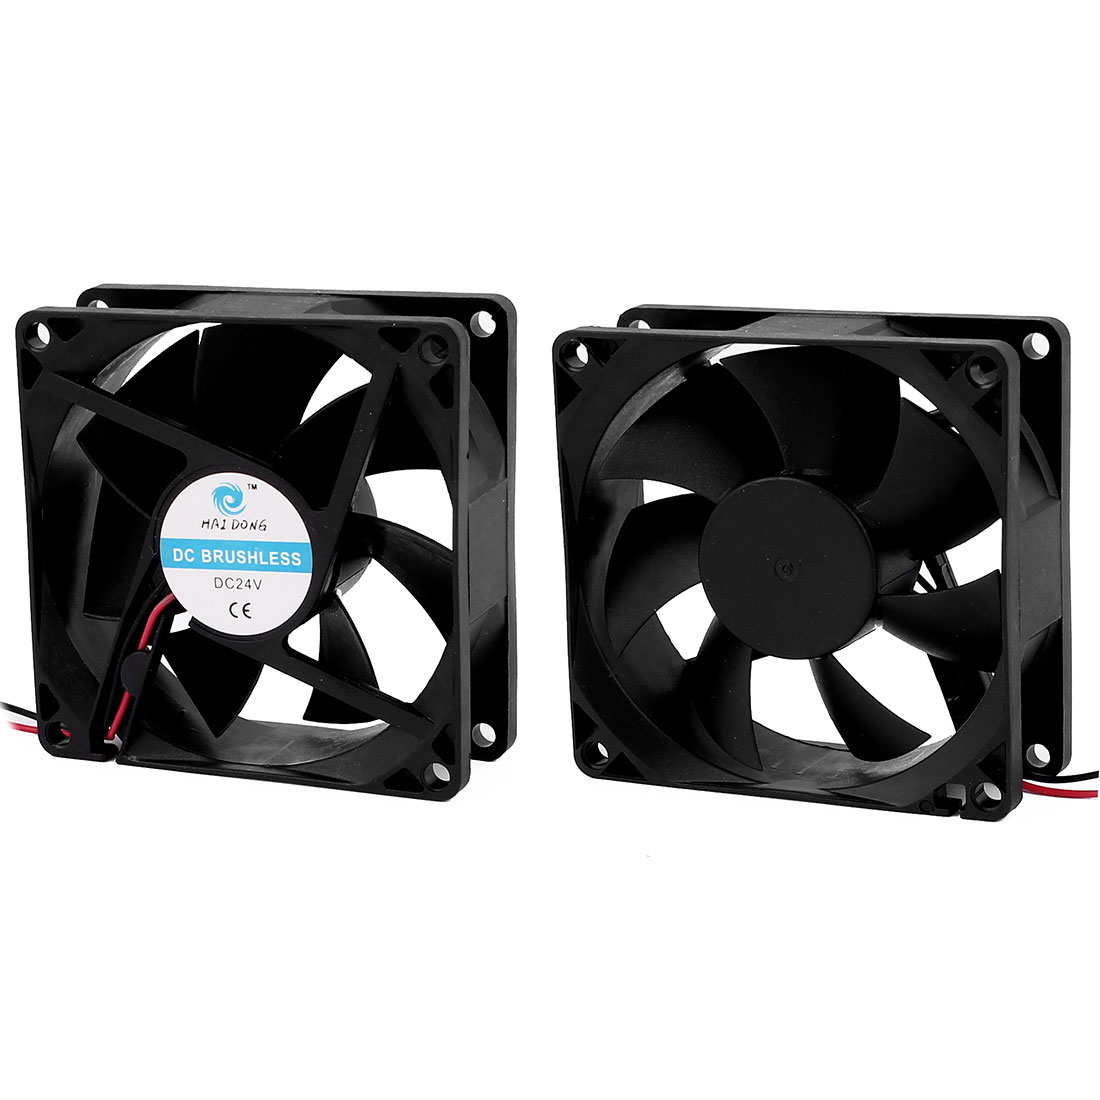 2Pcs DC 24V 0.12A 80mmx25mm 7 Vanes Cooling Fan for Computer Cases CPU Cooler Radiator